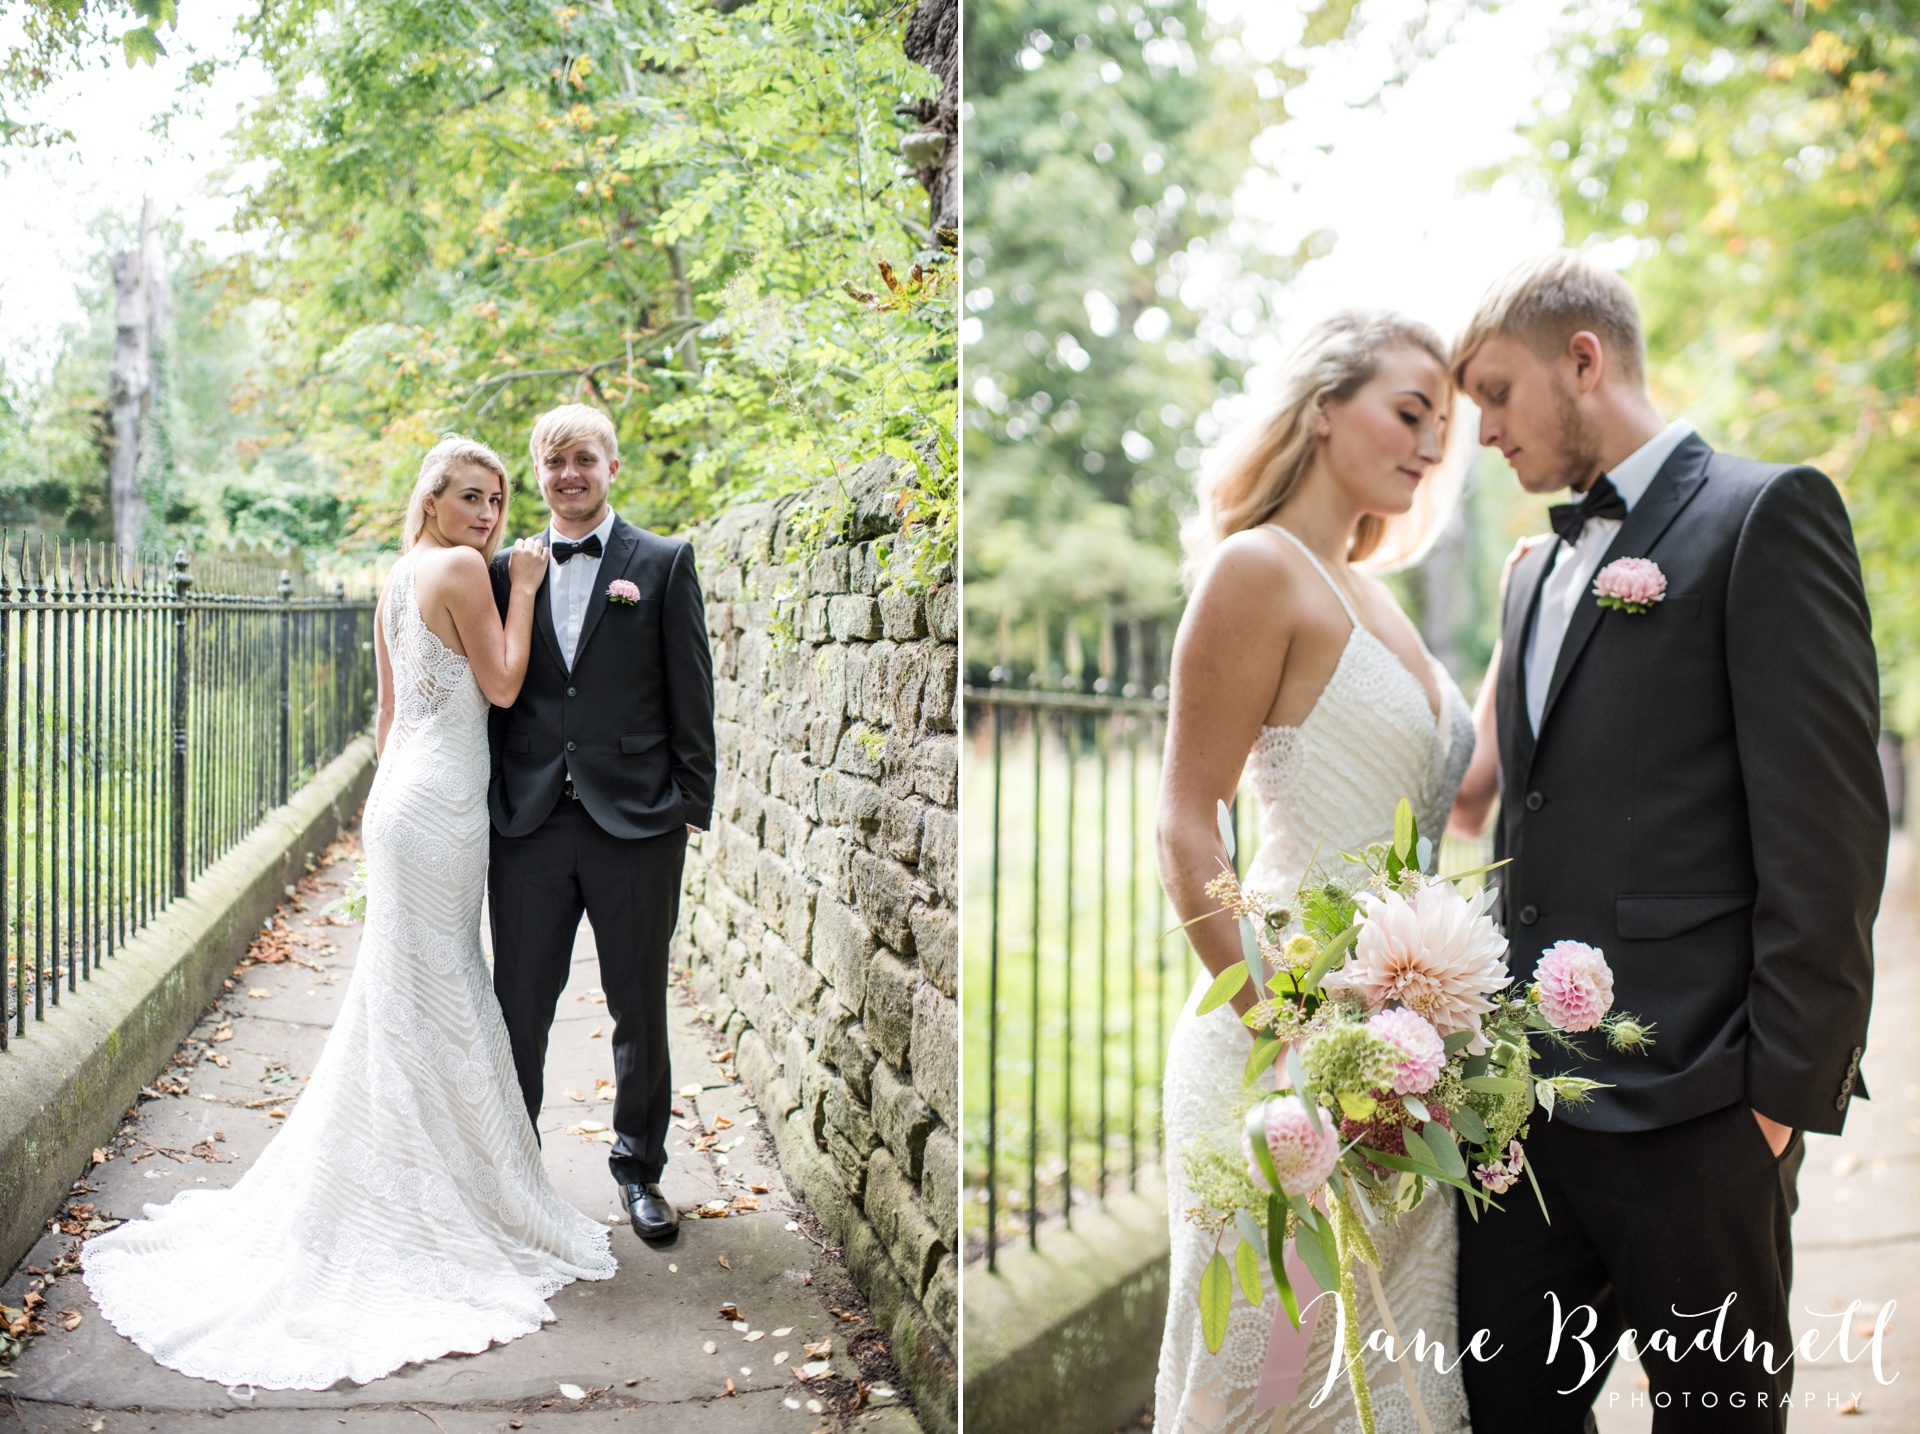 yorkshire-fine-art-wedding-photographer-jane-beadnell-photography-with-leafy-couture-wedding-flowers_0011